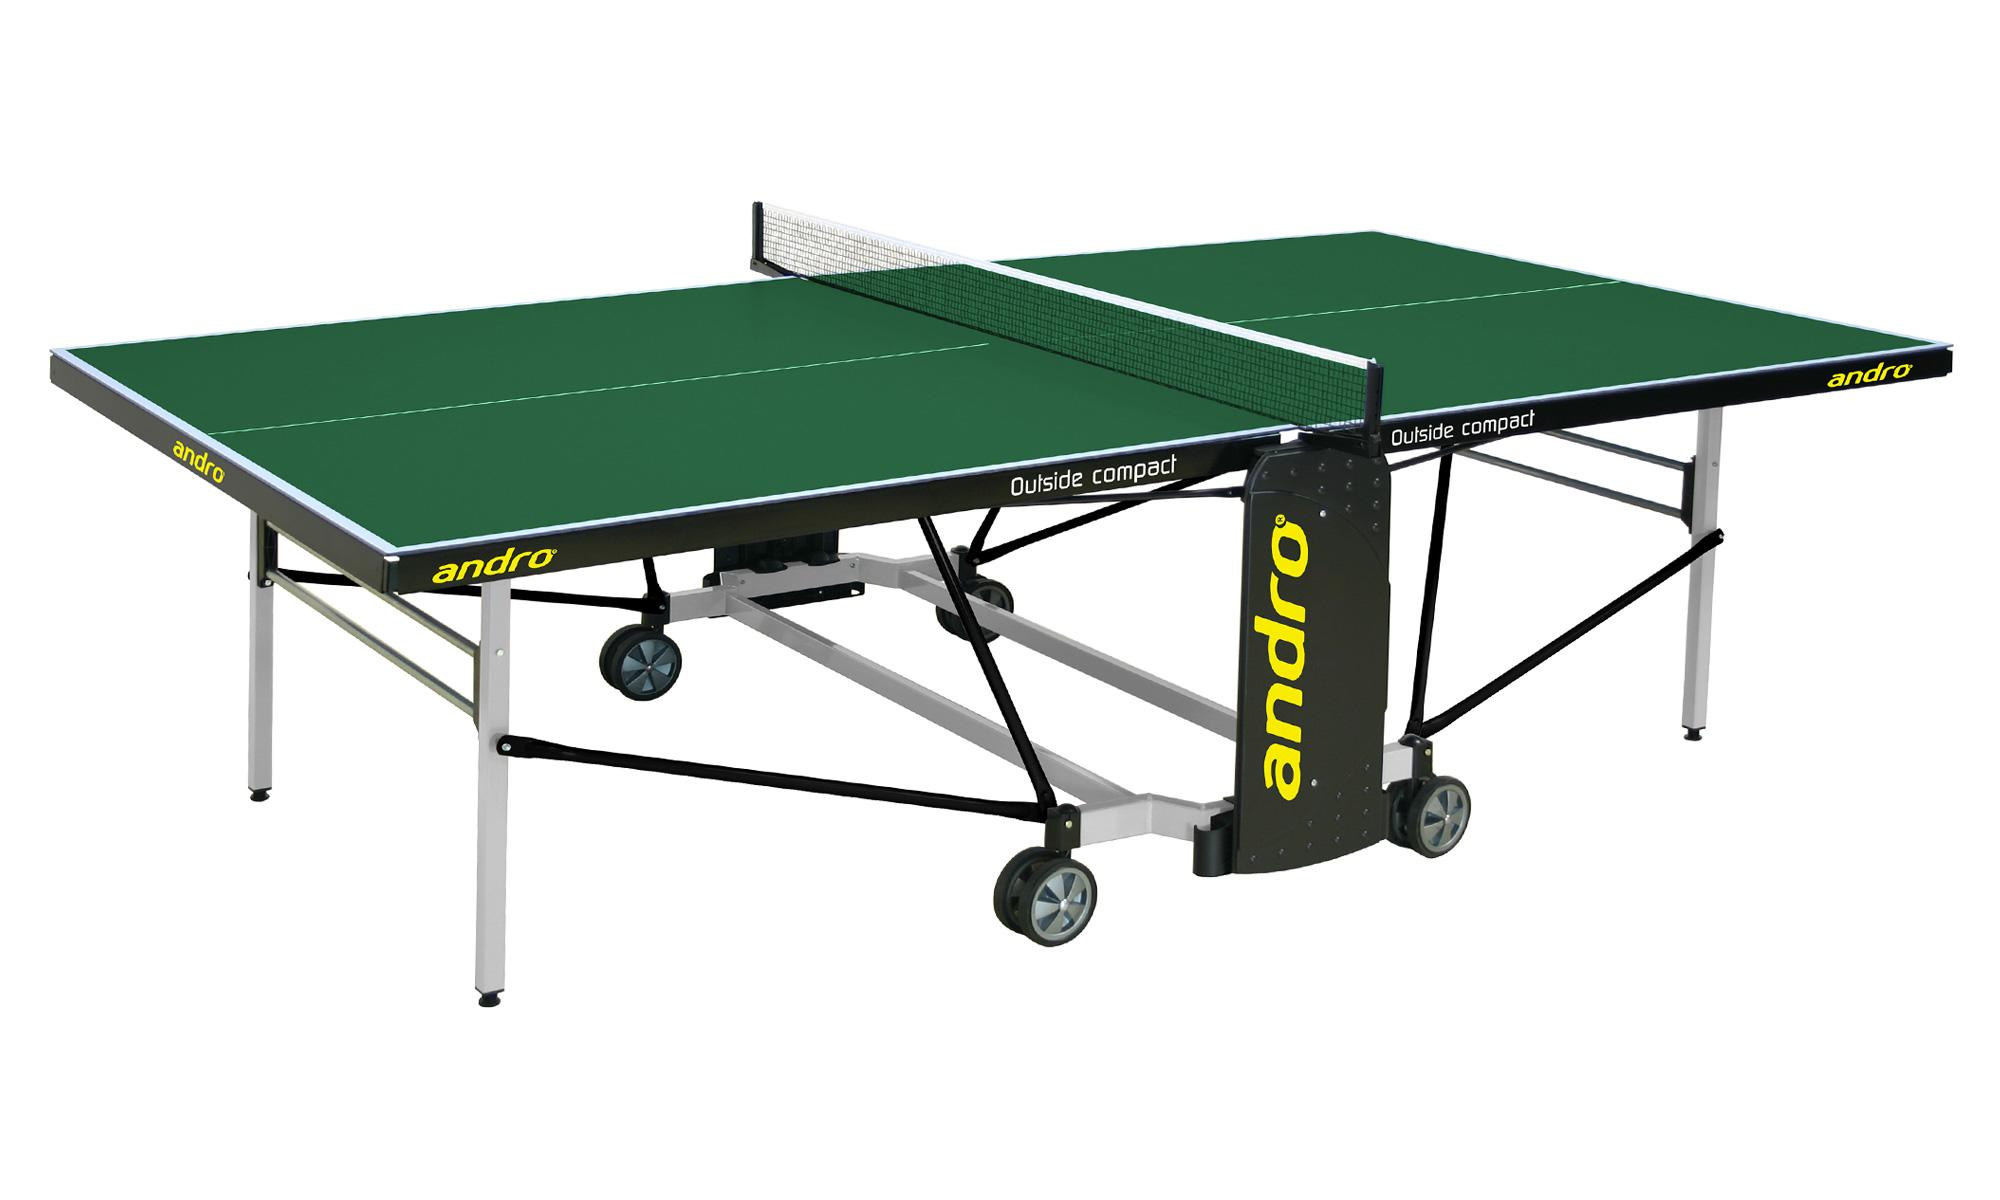 Andro outdoor playback compact folding table tennis table - Used outdoor table tennis tables for sale ...